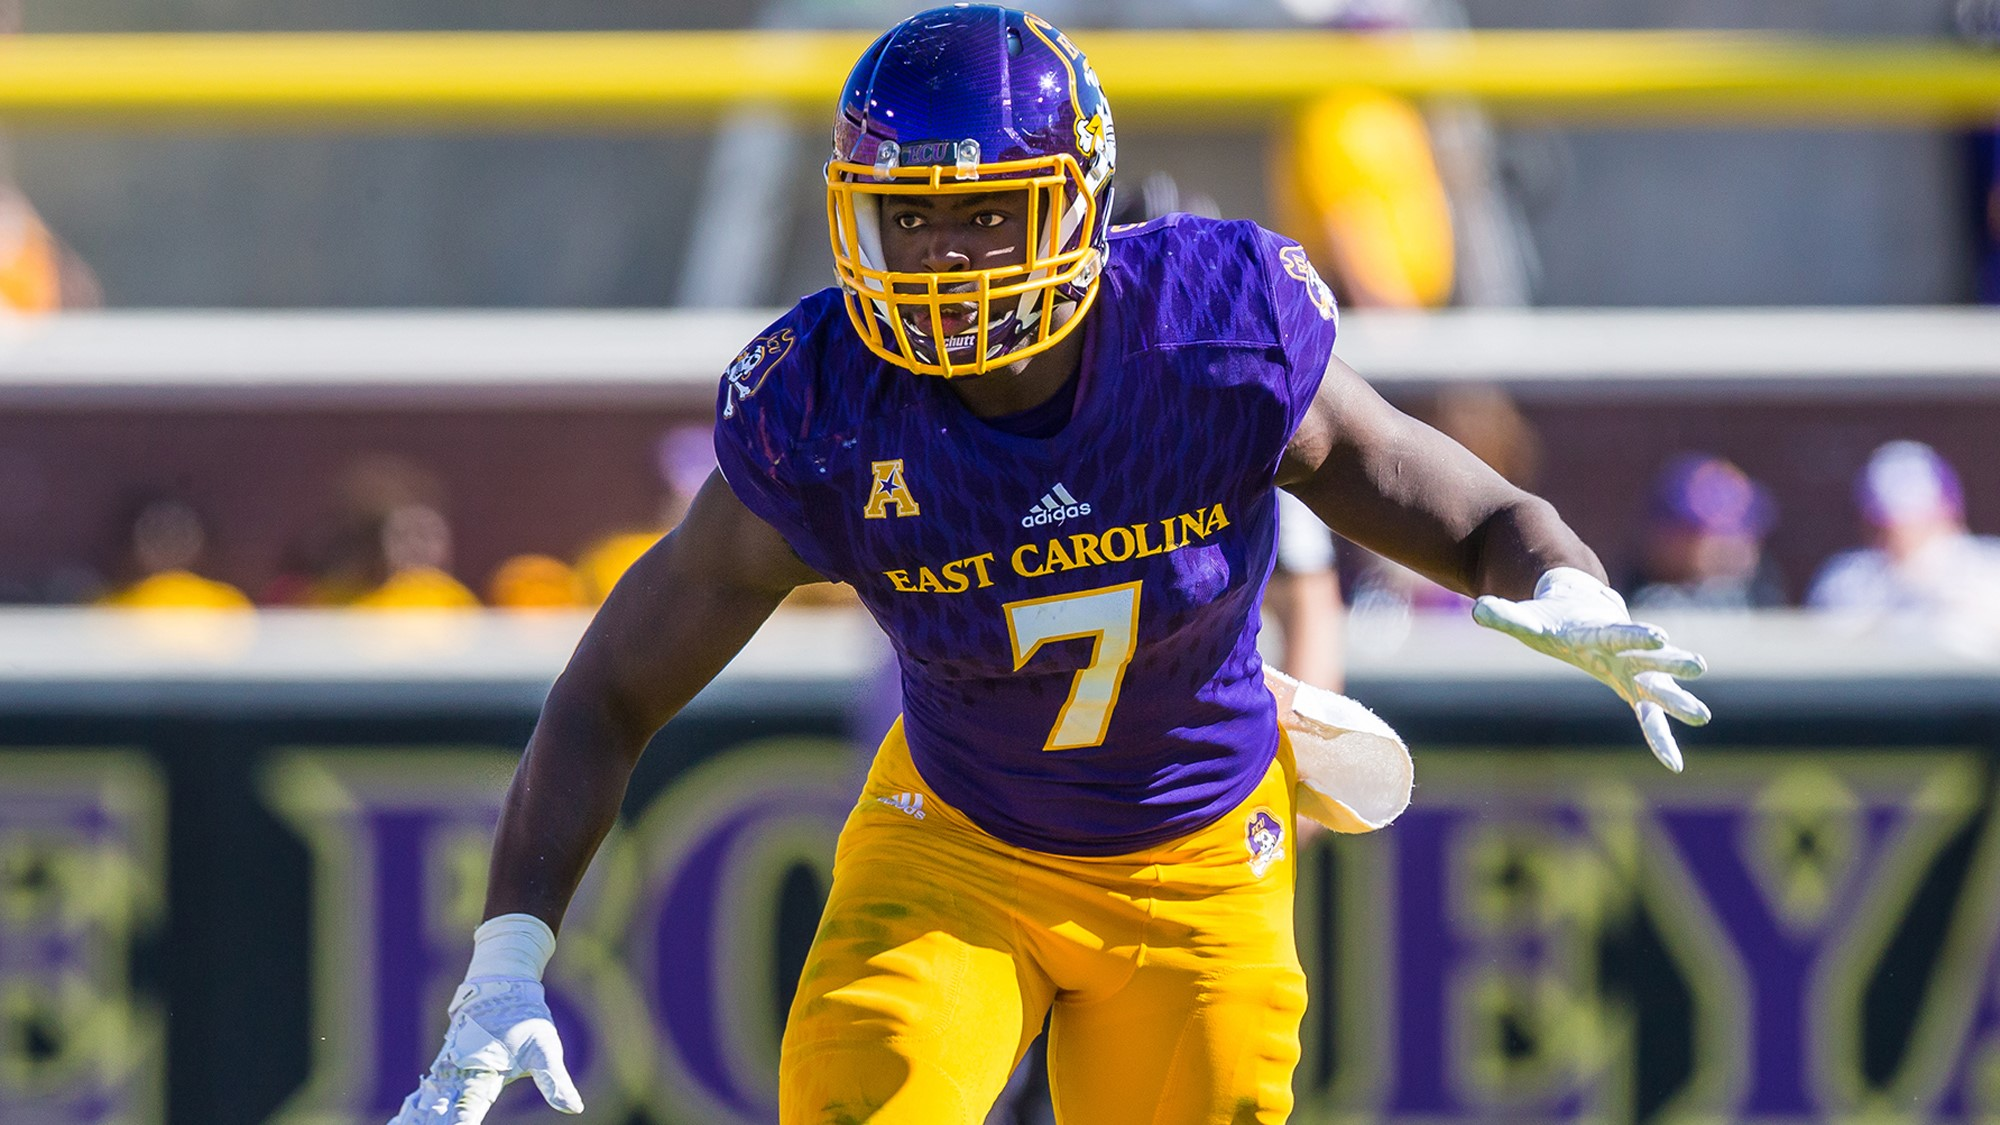 Gameday Ecu Hosts Jmu In Season Opener East Carolina University